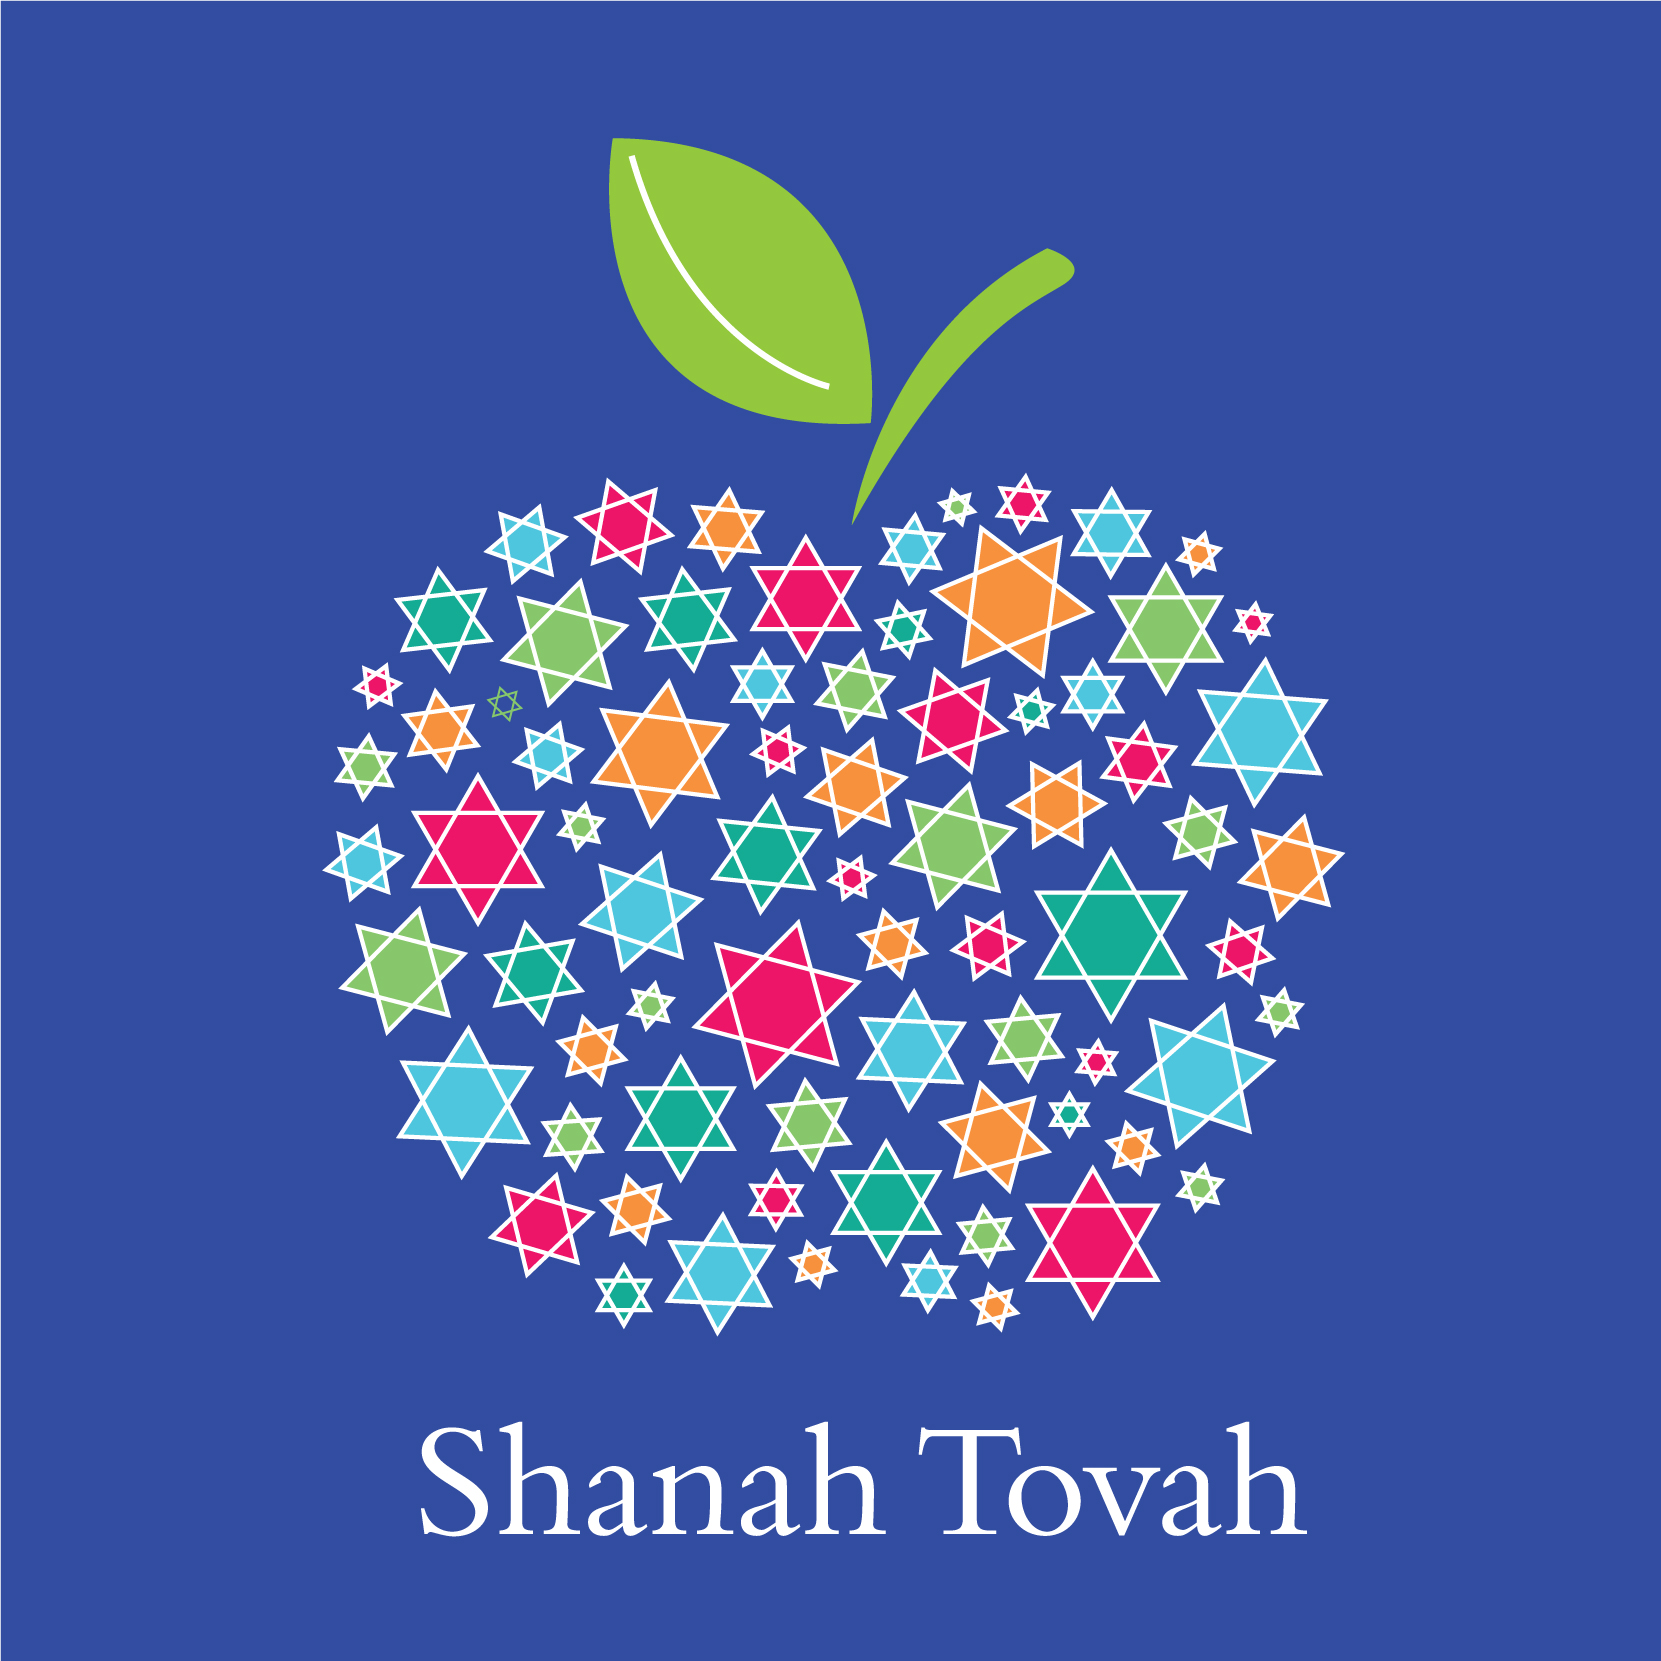 Shanah tovah warm wishes for a good and sweet new year ananya warm wishes for a good and sweet new year ananya m4hsunfo